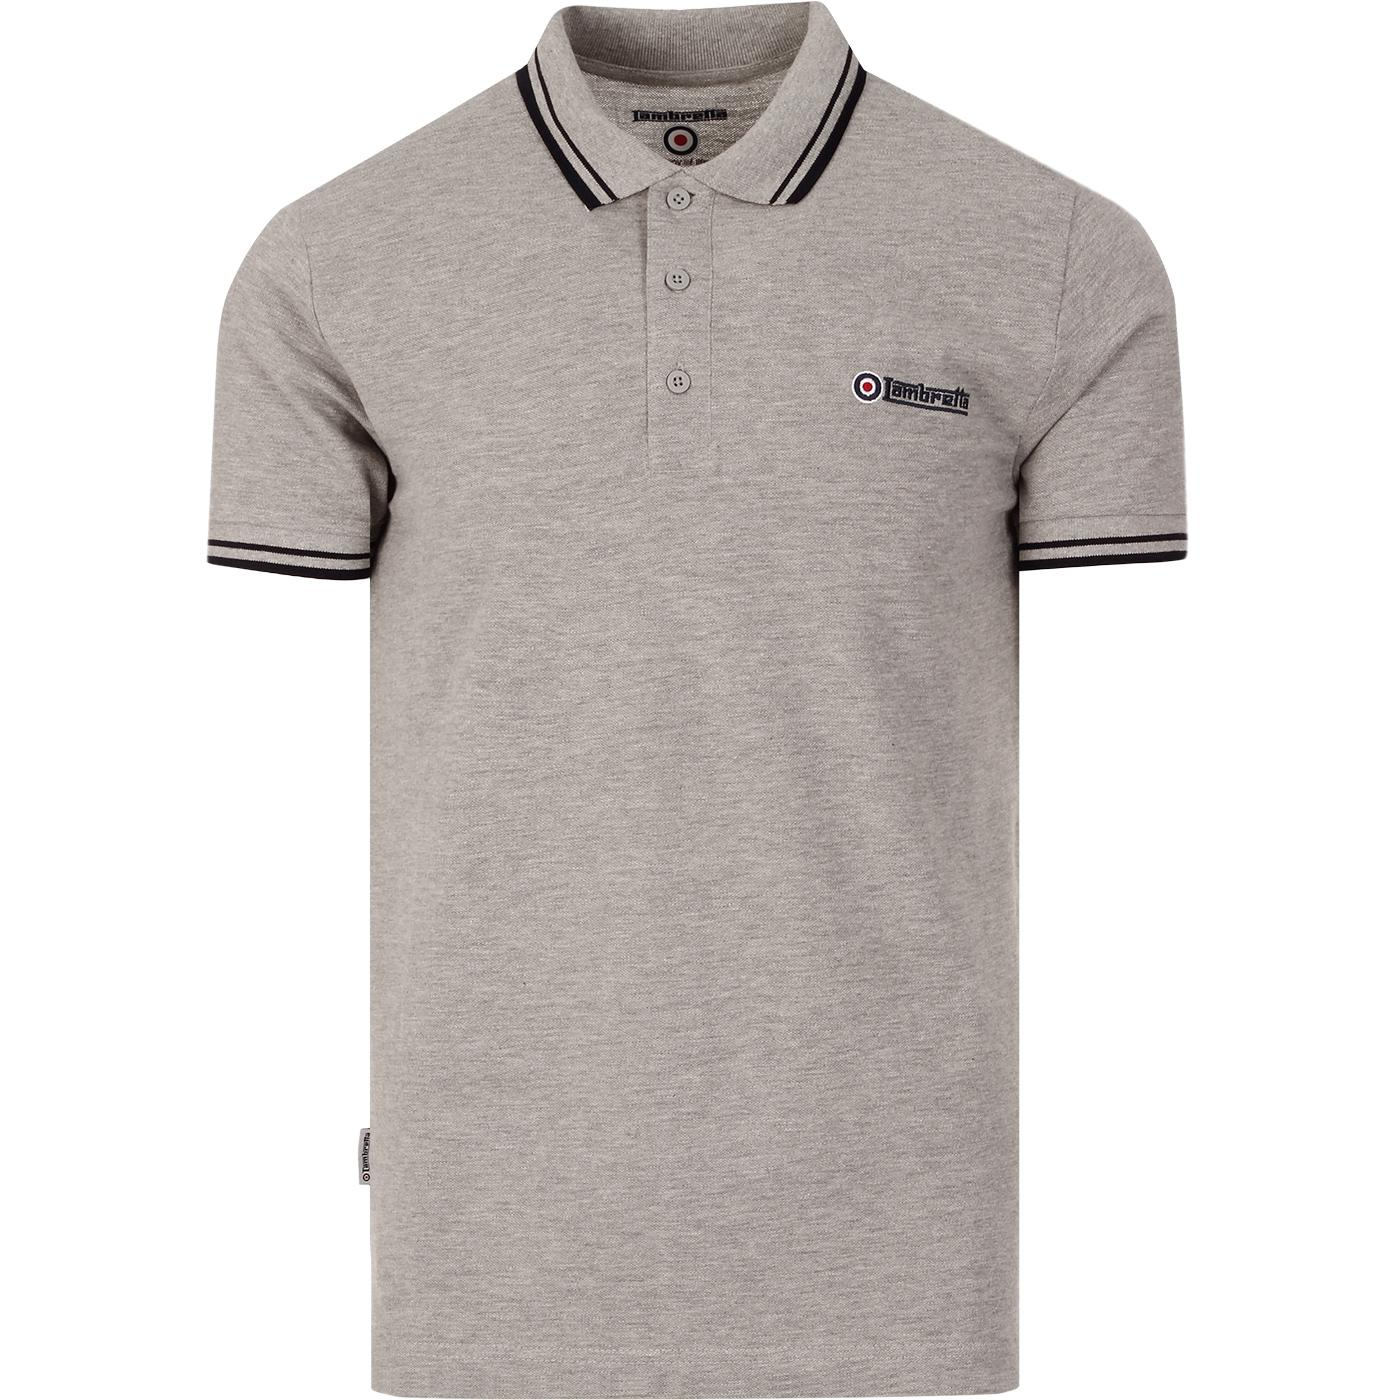 LAMBRETTA Retro Twin Tipped Pique Polo Shirt GM/N